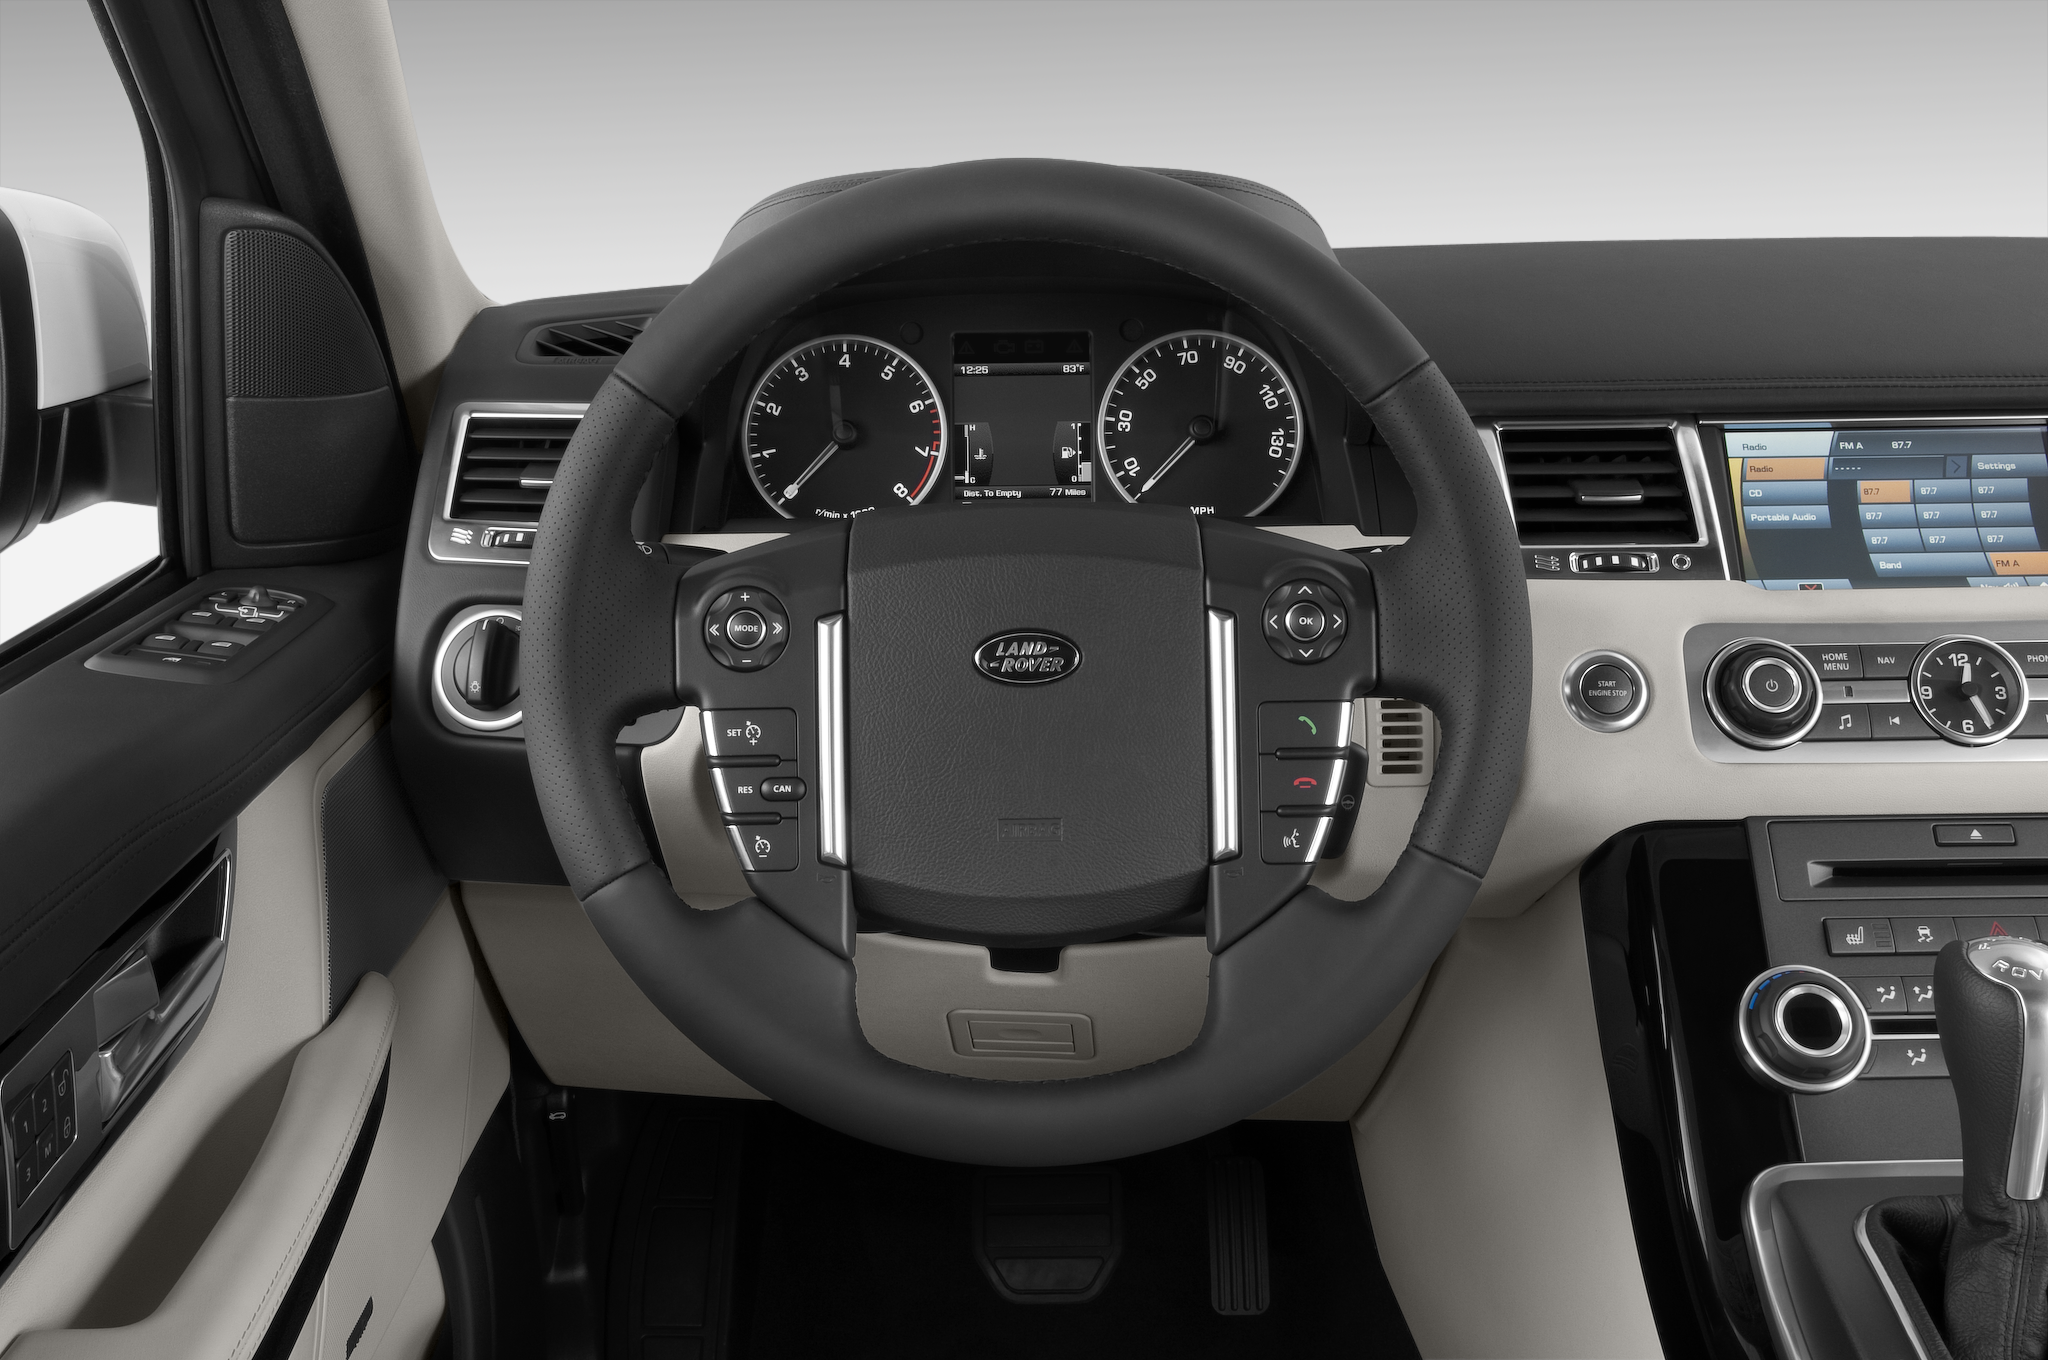 http://st.automobilemag.com/uploads/sites/10/2015/11/2010-land-rover-range-rover-sport-hse-suv-steering-wheel.png